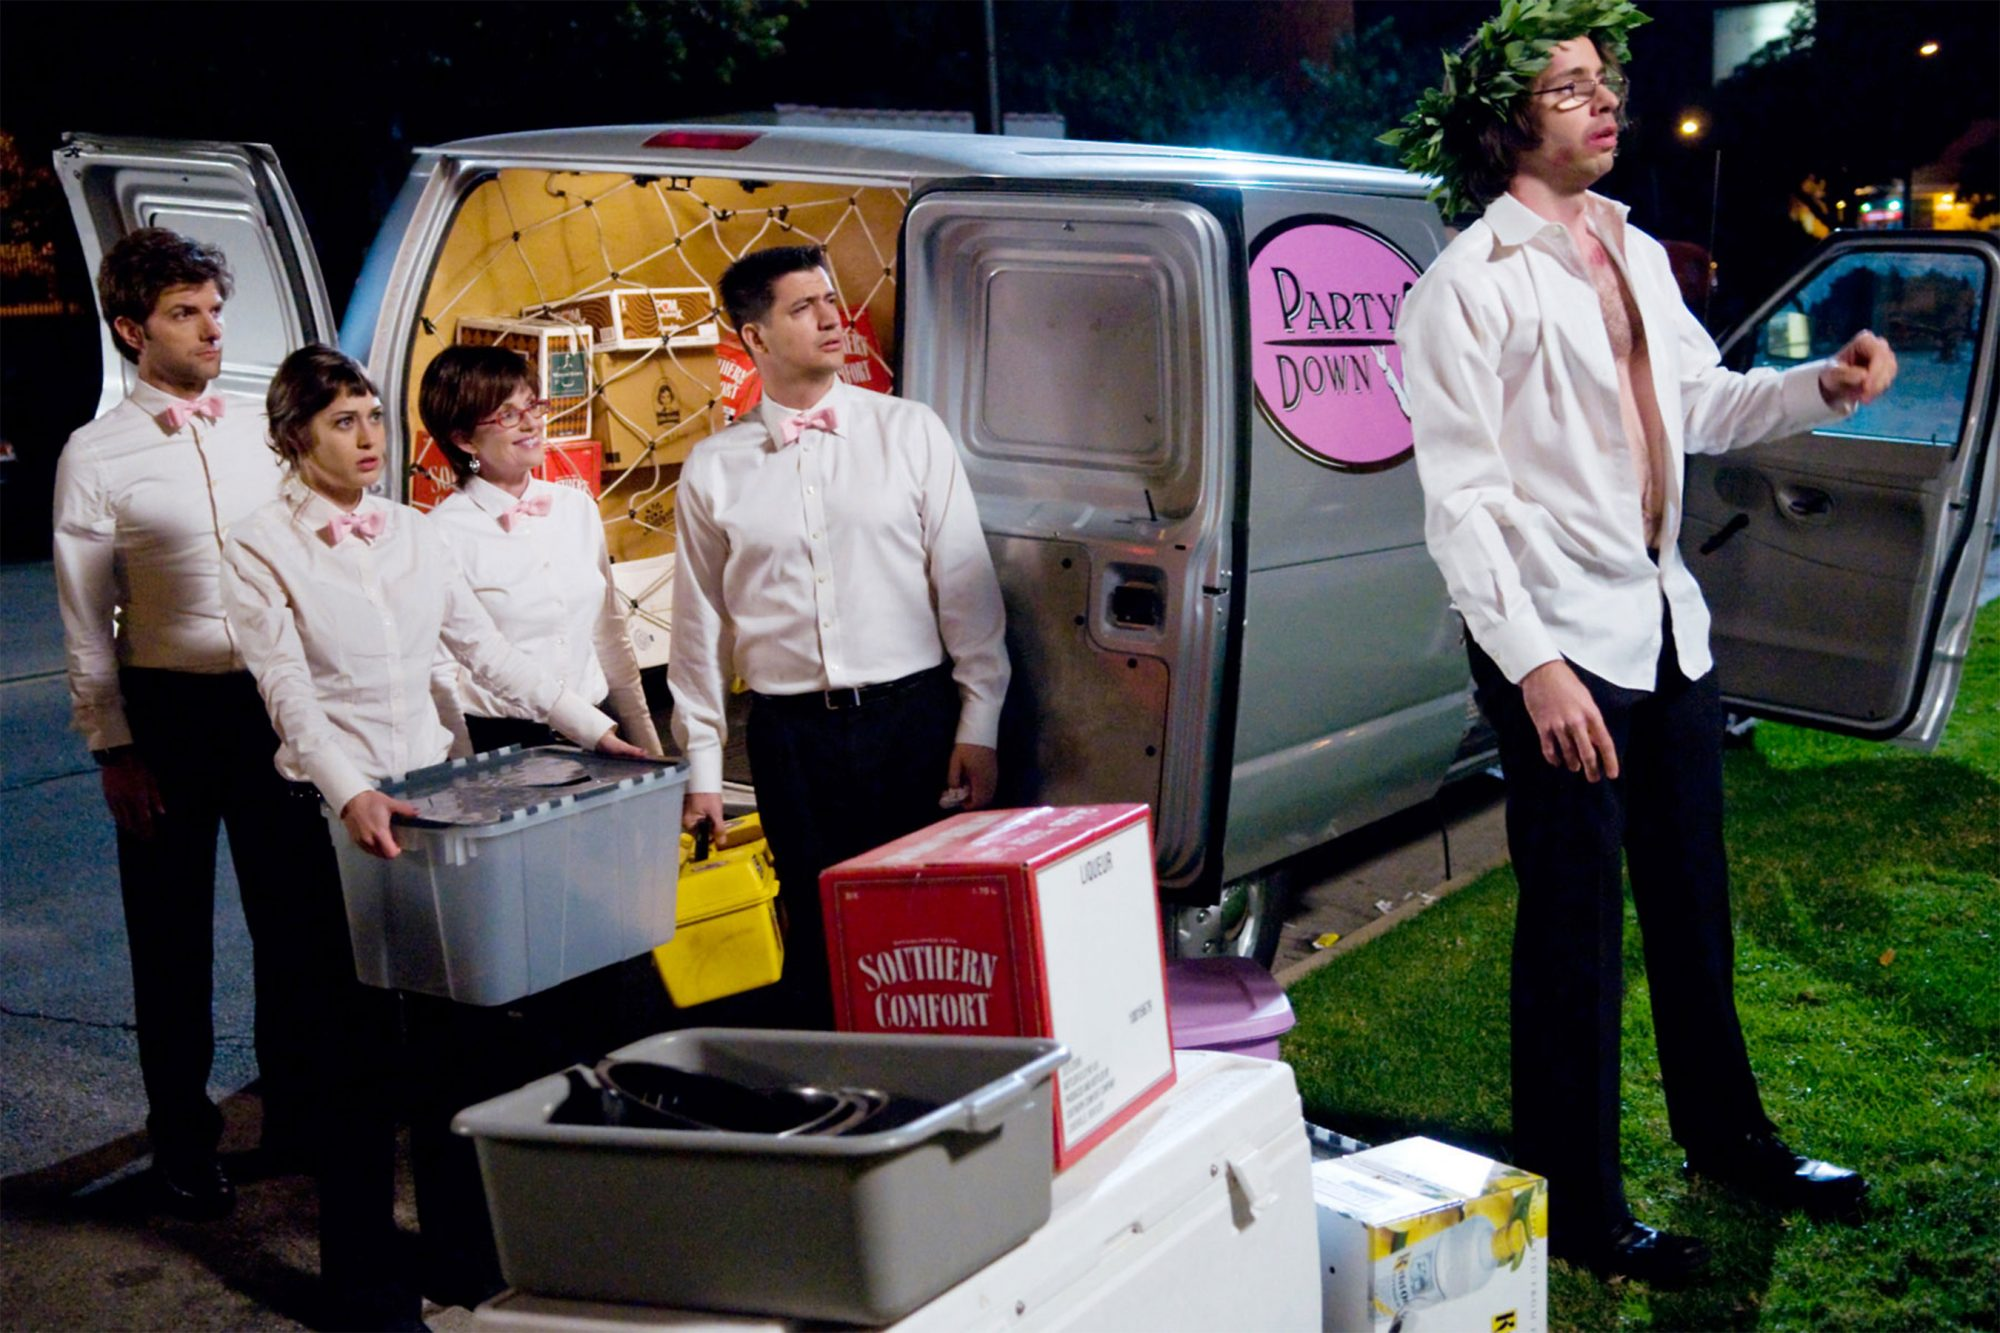 PARTY DOWN, (from left): Adam Scott, Lizzy Caplan, Megan Mullally, Ken Marino, Martin Starr, 'Not On